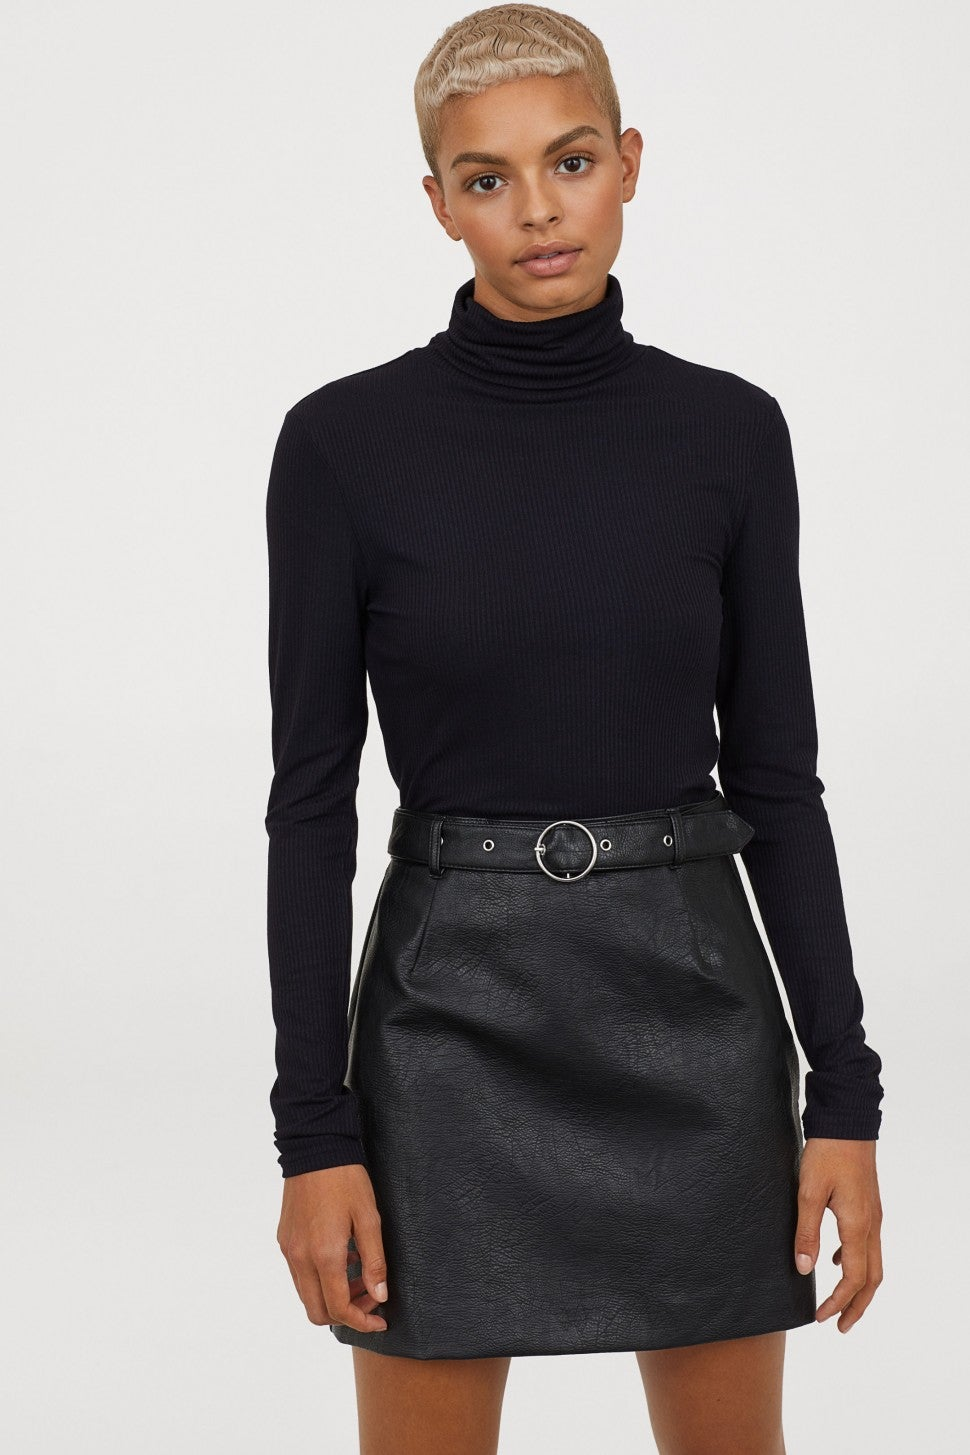 H&M turtleneck